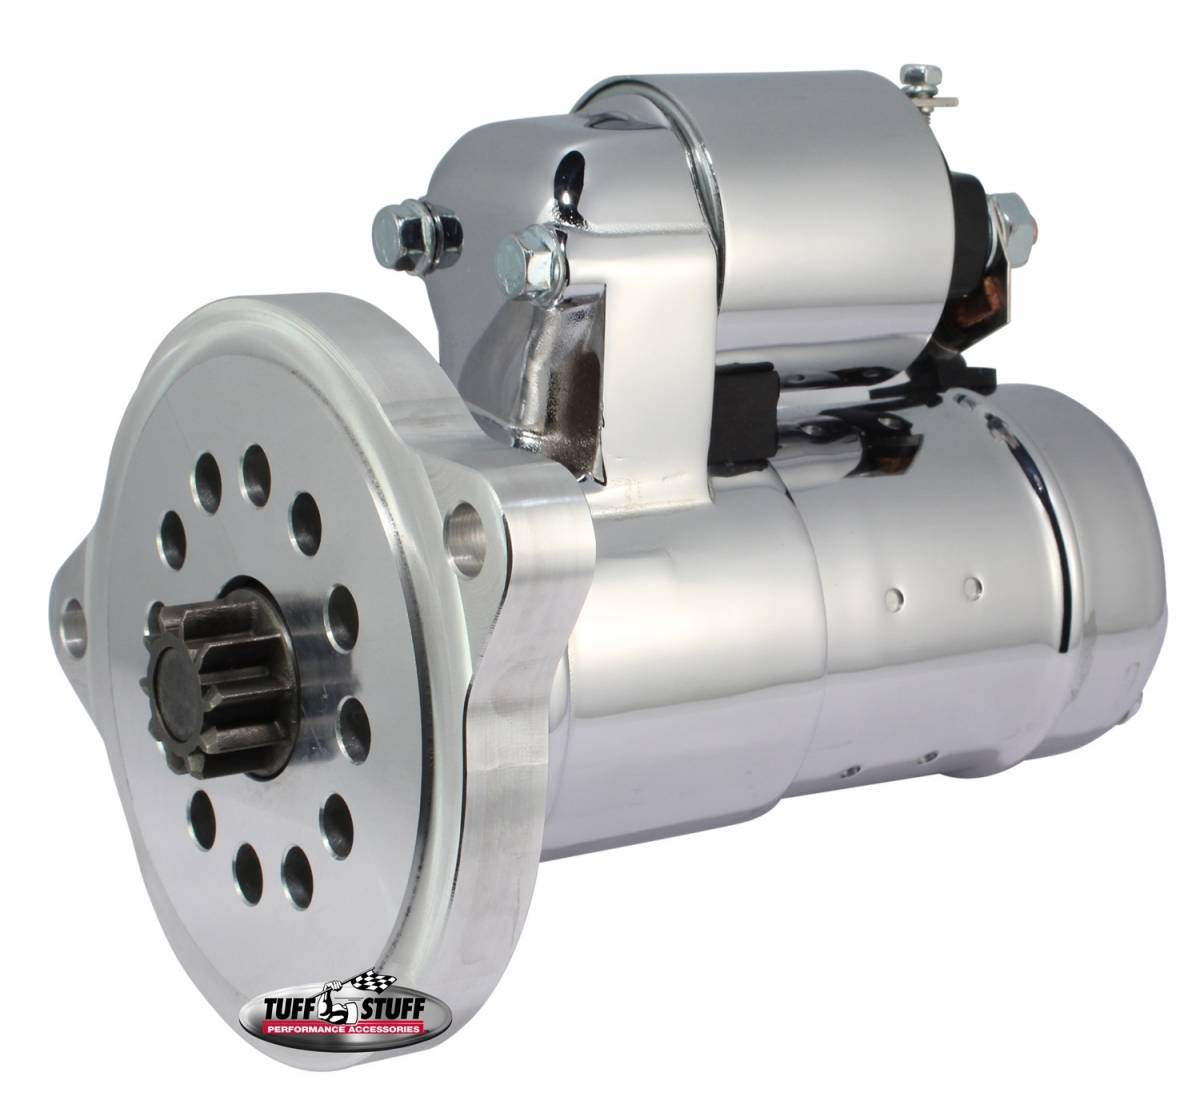 Tuff Stuff Performance - Gear Reduction Starter 1.6 KW Motor 2 Bolt Straight Mounting Indexable Chrome 6551A